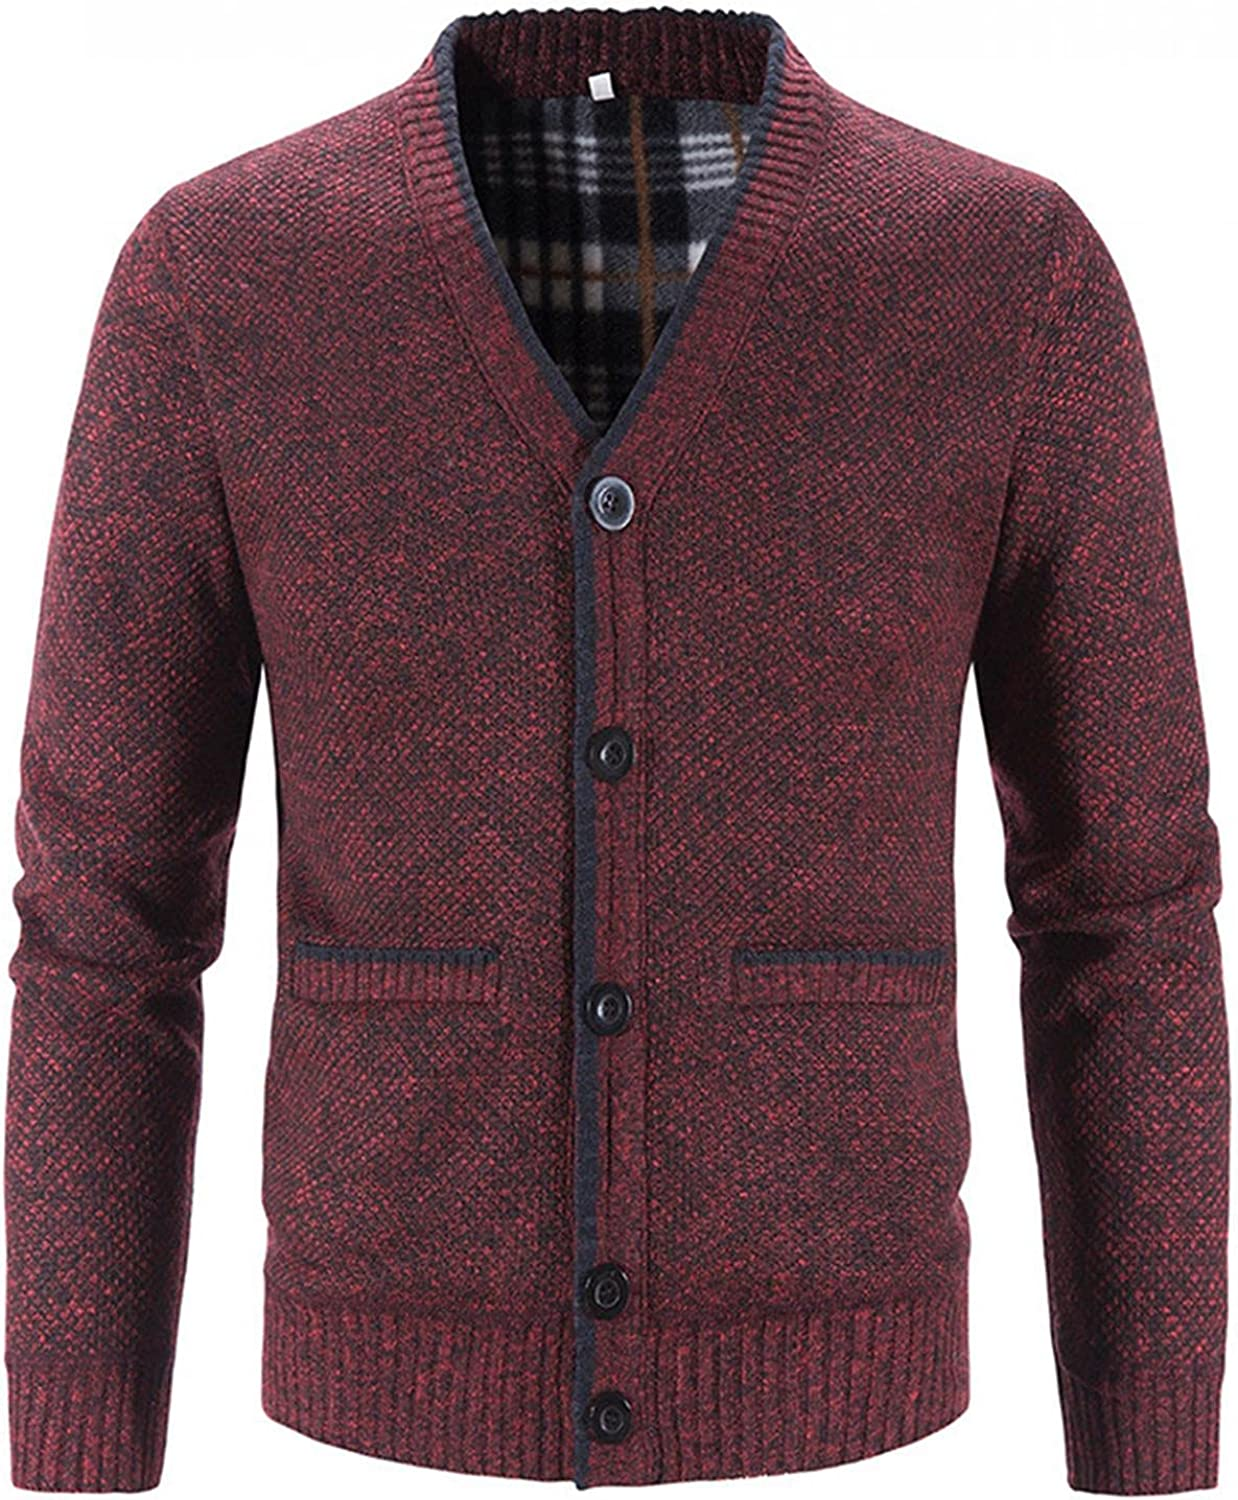 LEIYAN Mens Long Sleeve Knitted Cardigan Casual V-Neck Graphic Patchwork Thermal Button Down Cable Knit Jackets